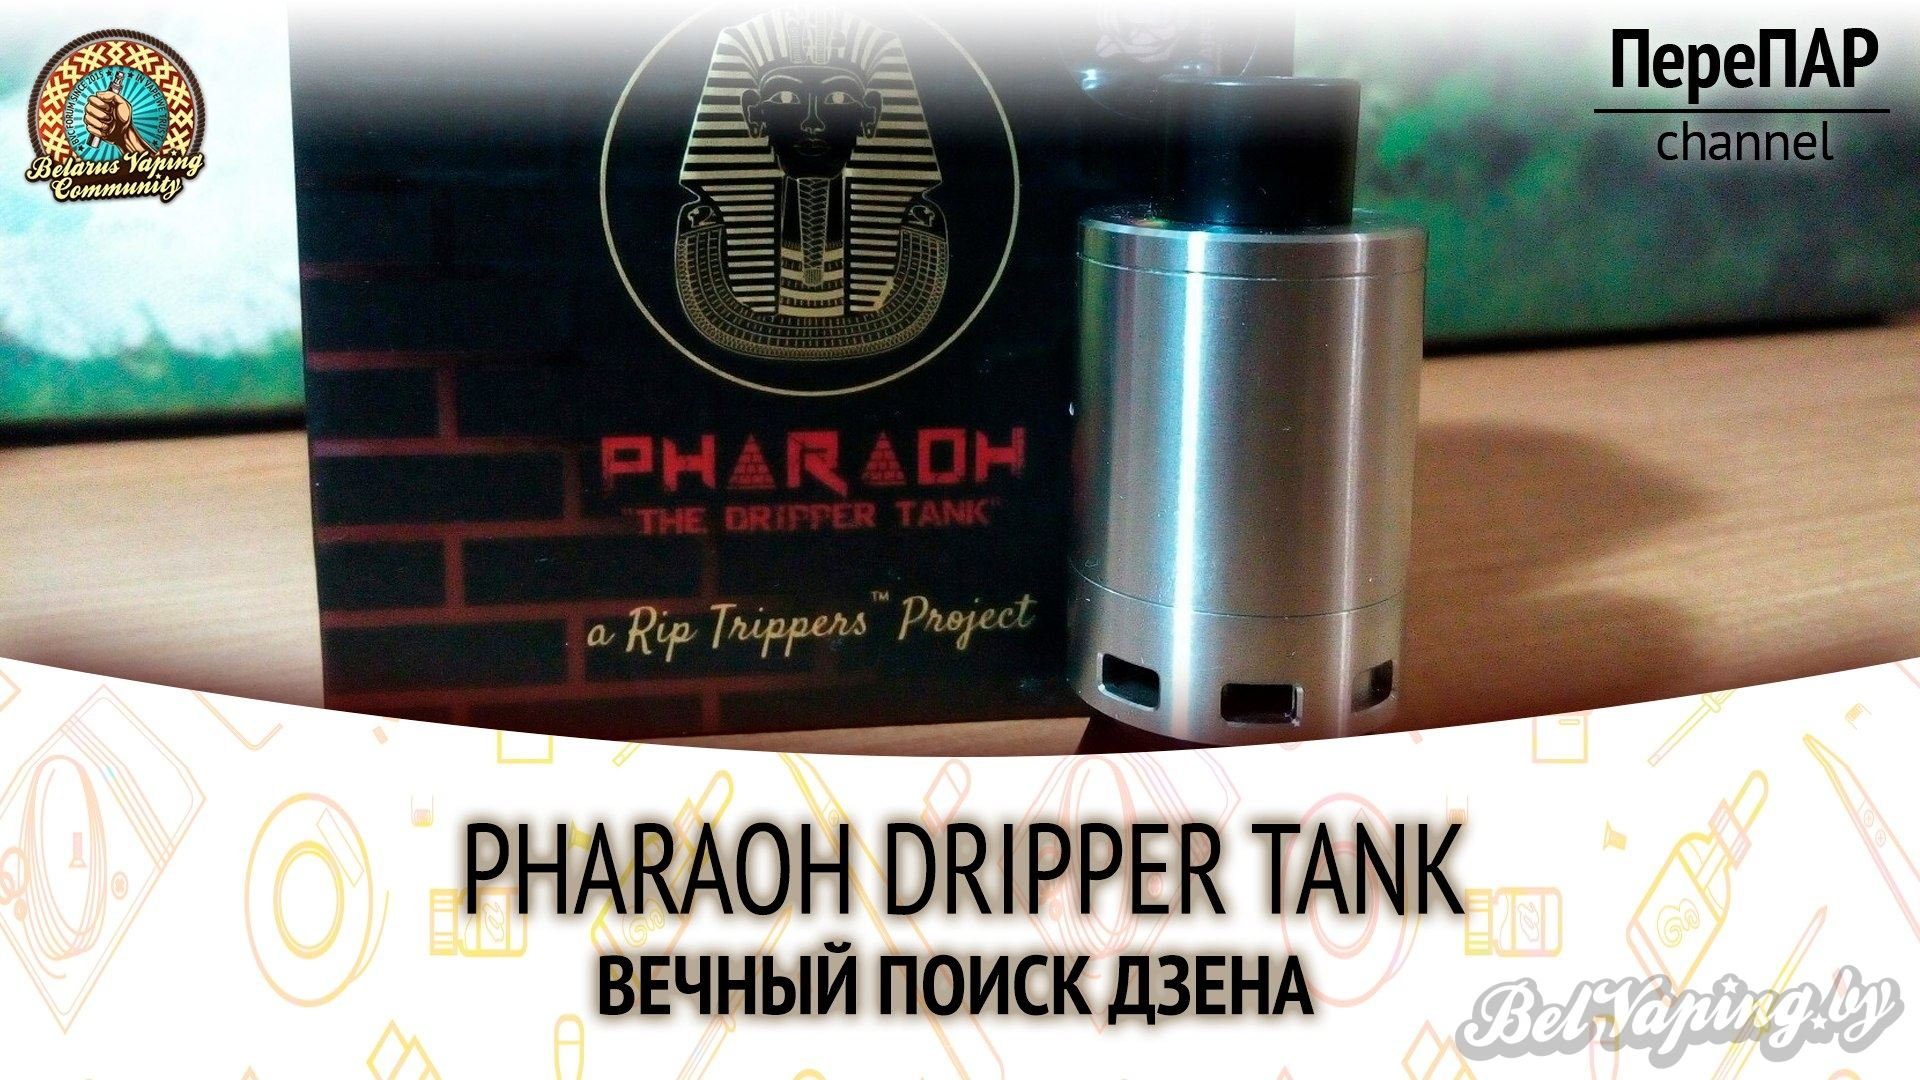 Обзор Pharaoh Dripper Tank от Digiflavor и RiP Trippers